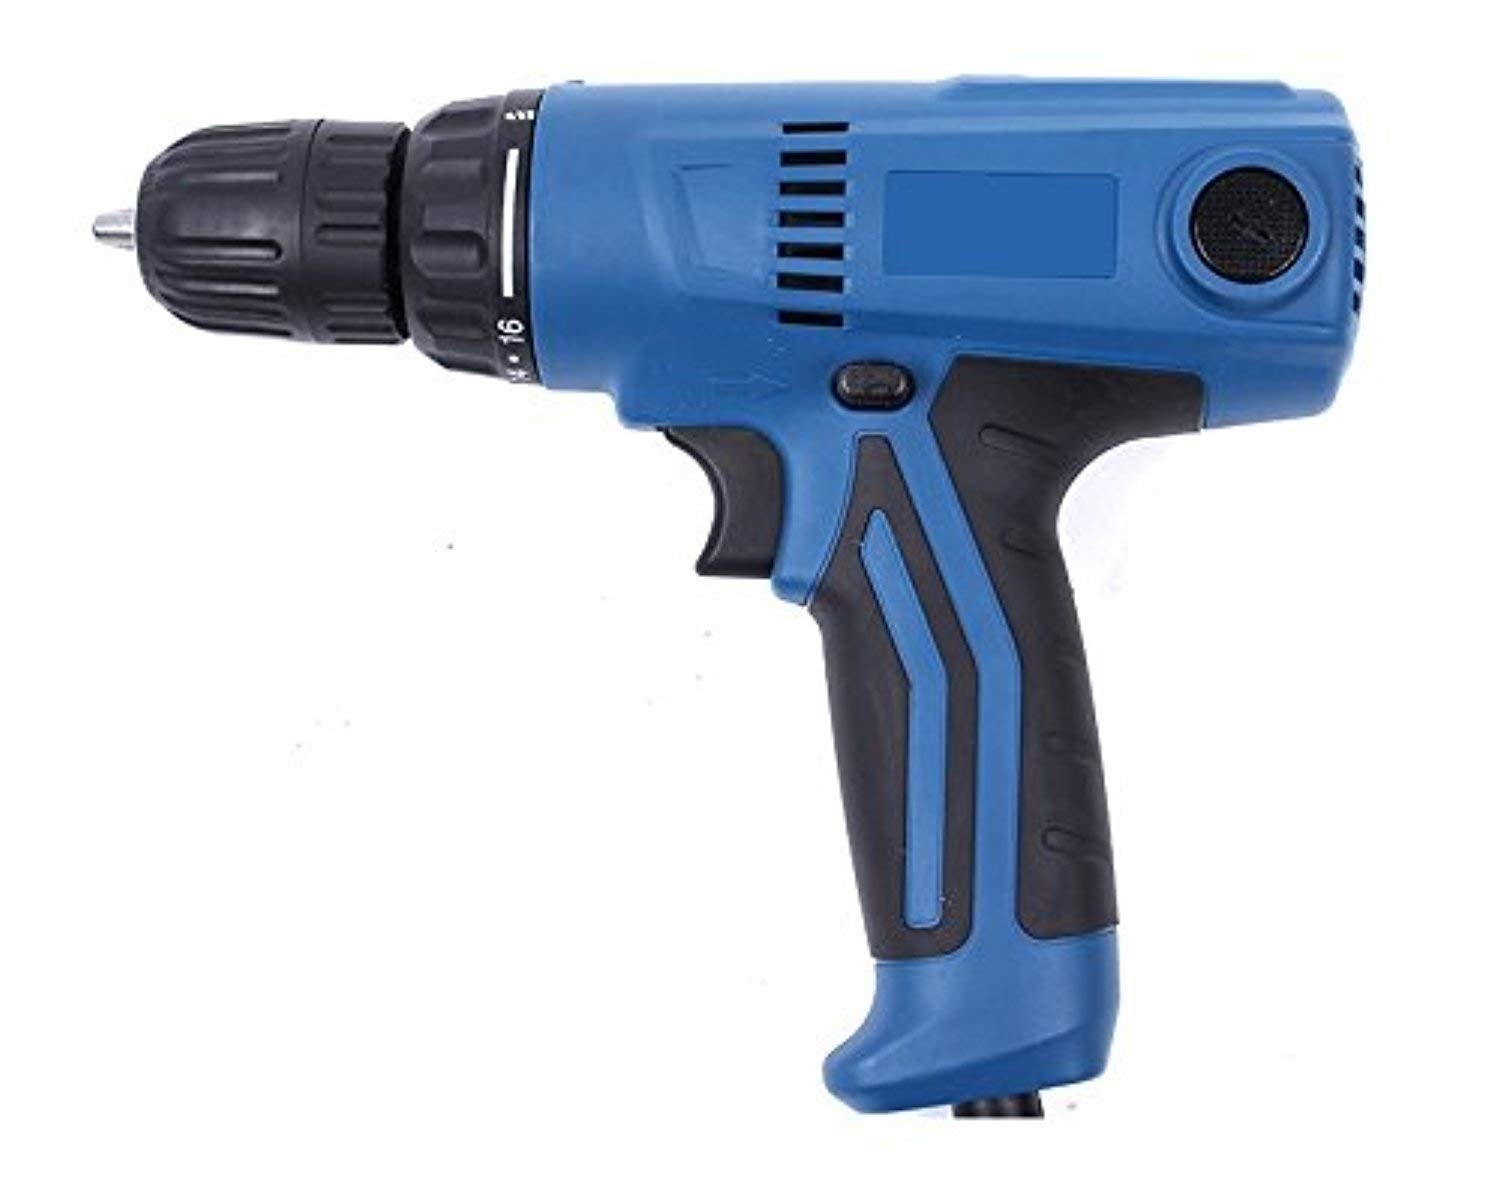 Dongcheng DJZ08-10 Electric Drill – Keyless Chuck 10mm 250W